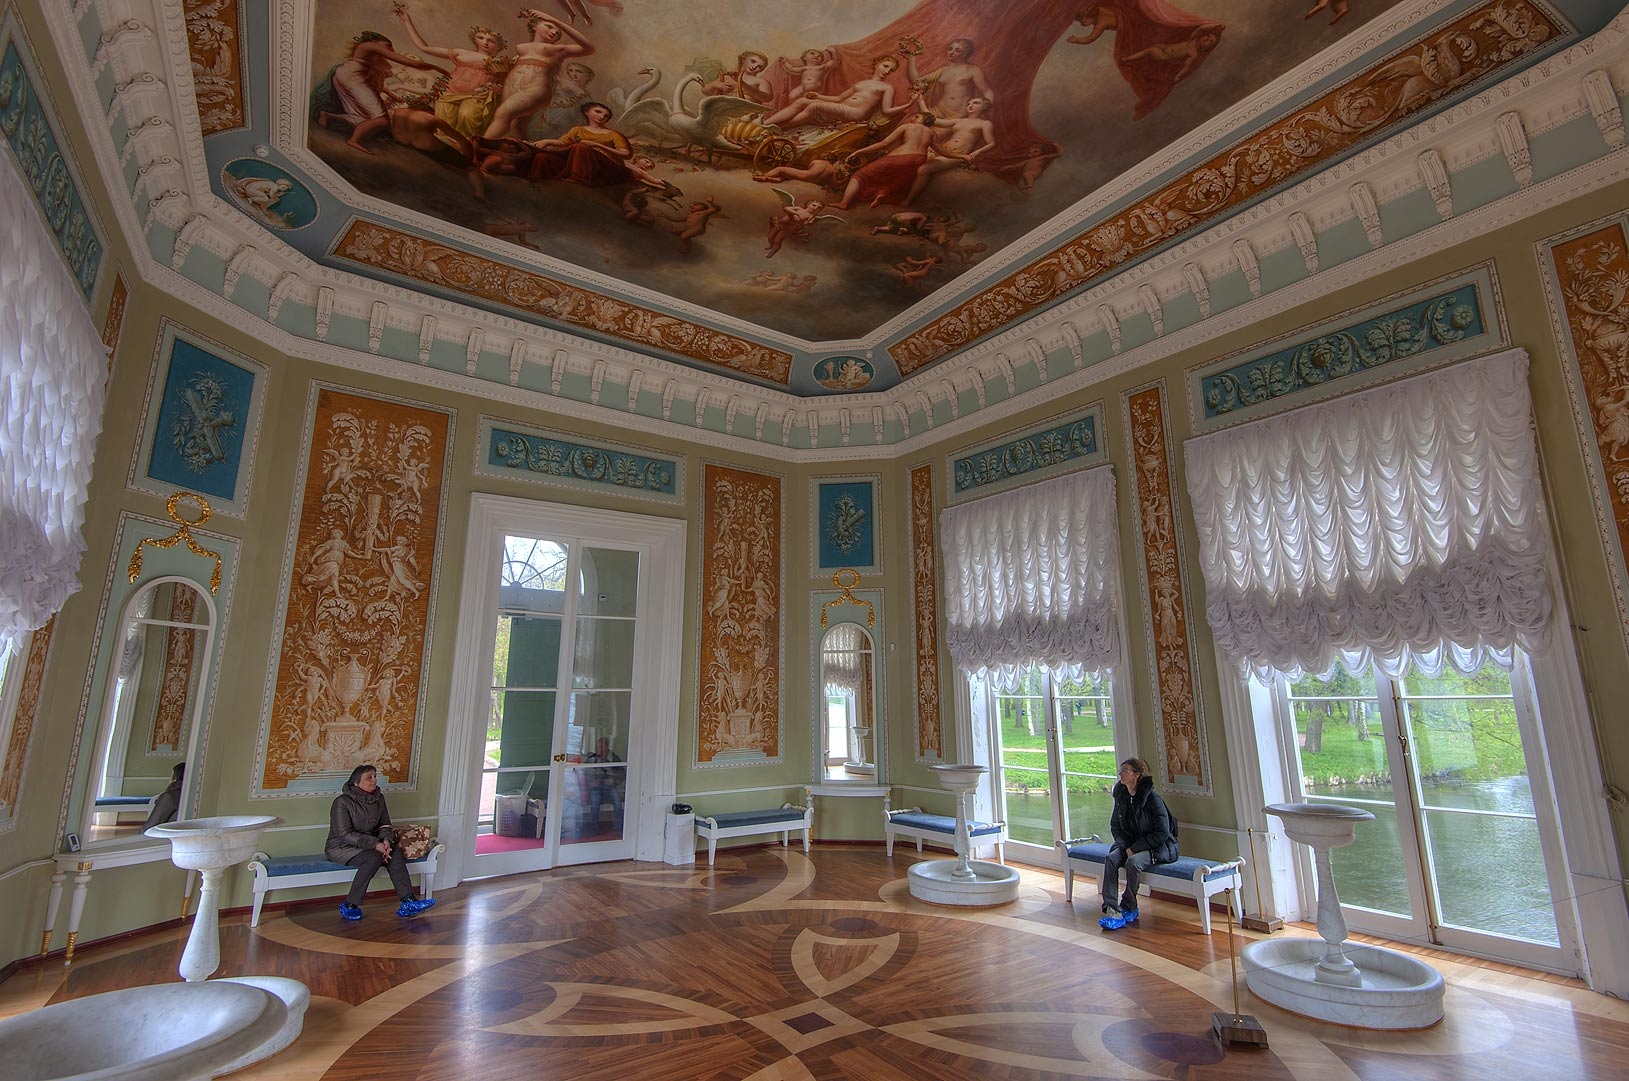 Interior of Venus Pavilion at Beloe Lake. Gatchina, suburb of St.Petersburg, Russia